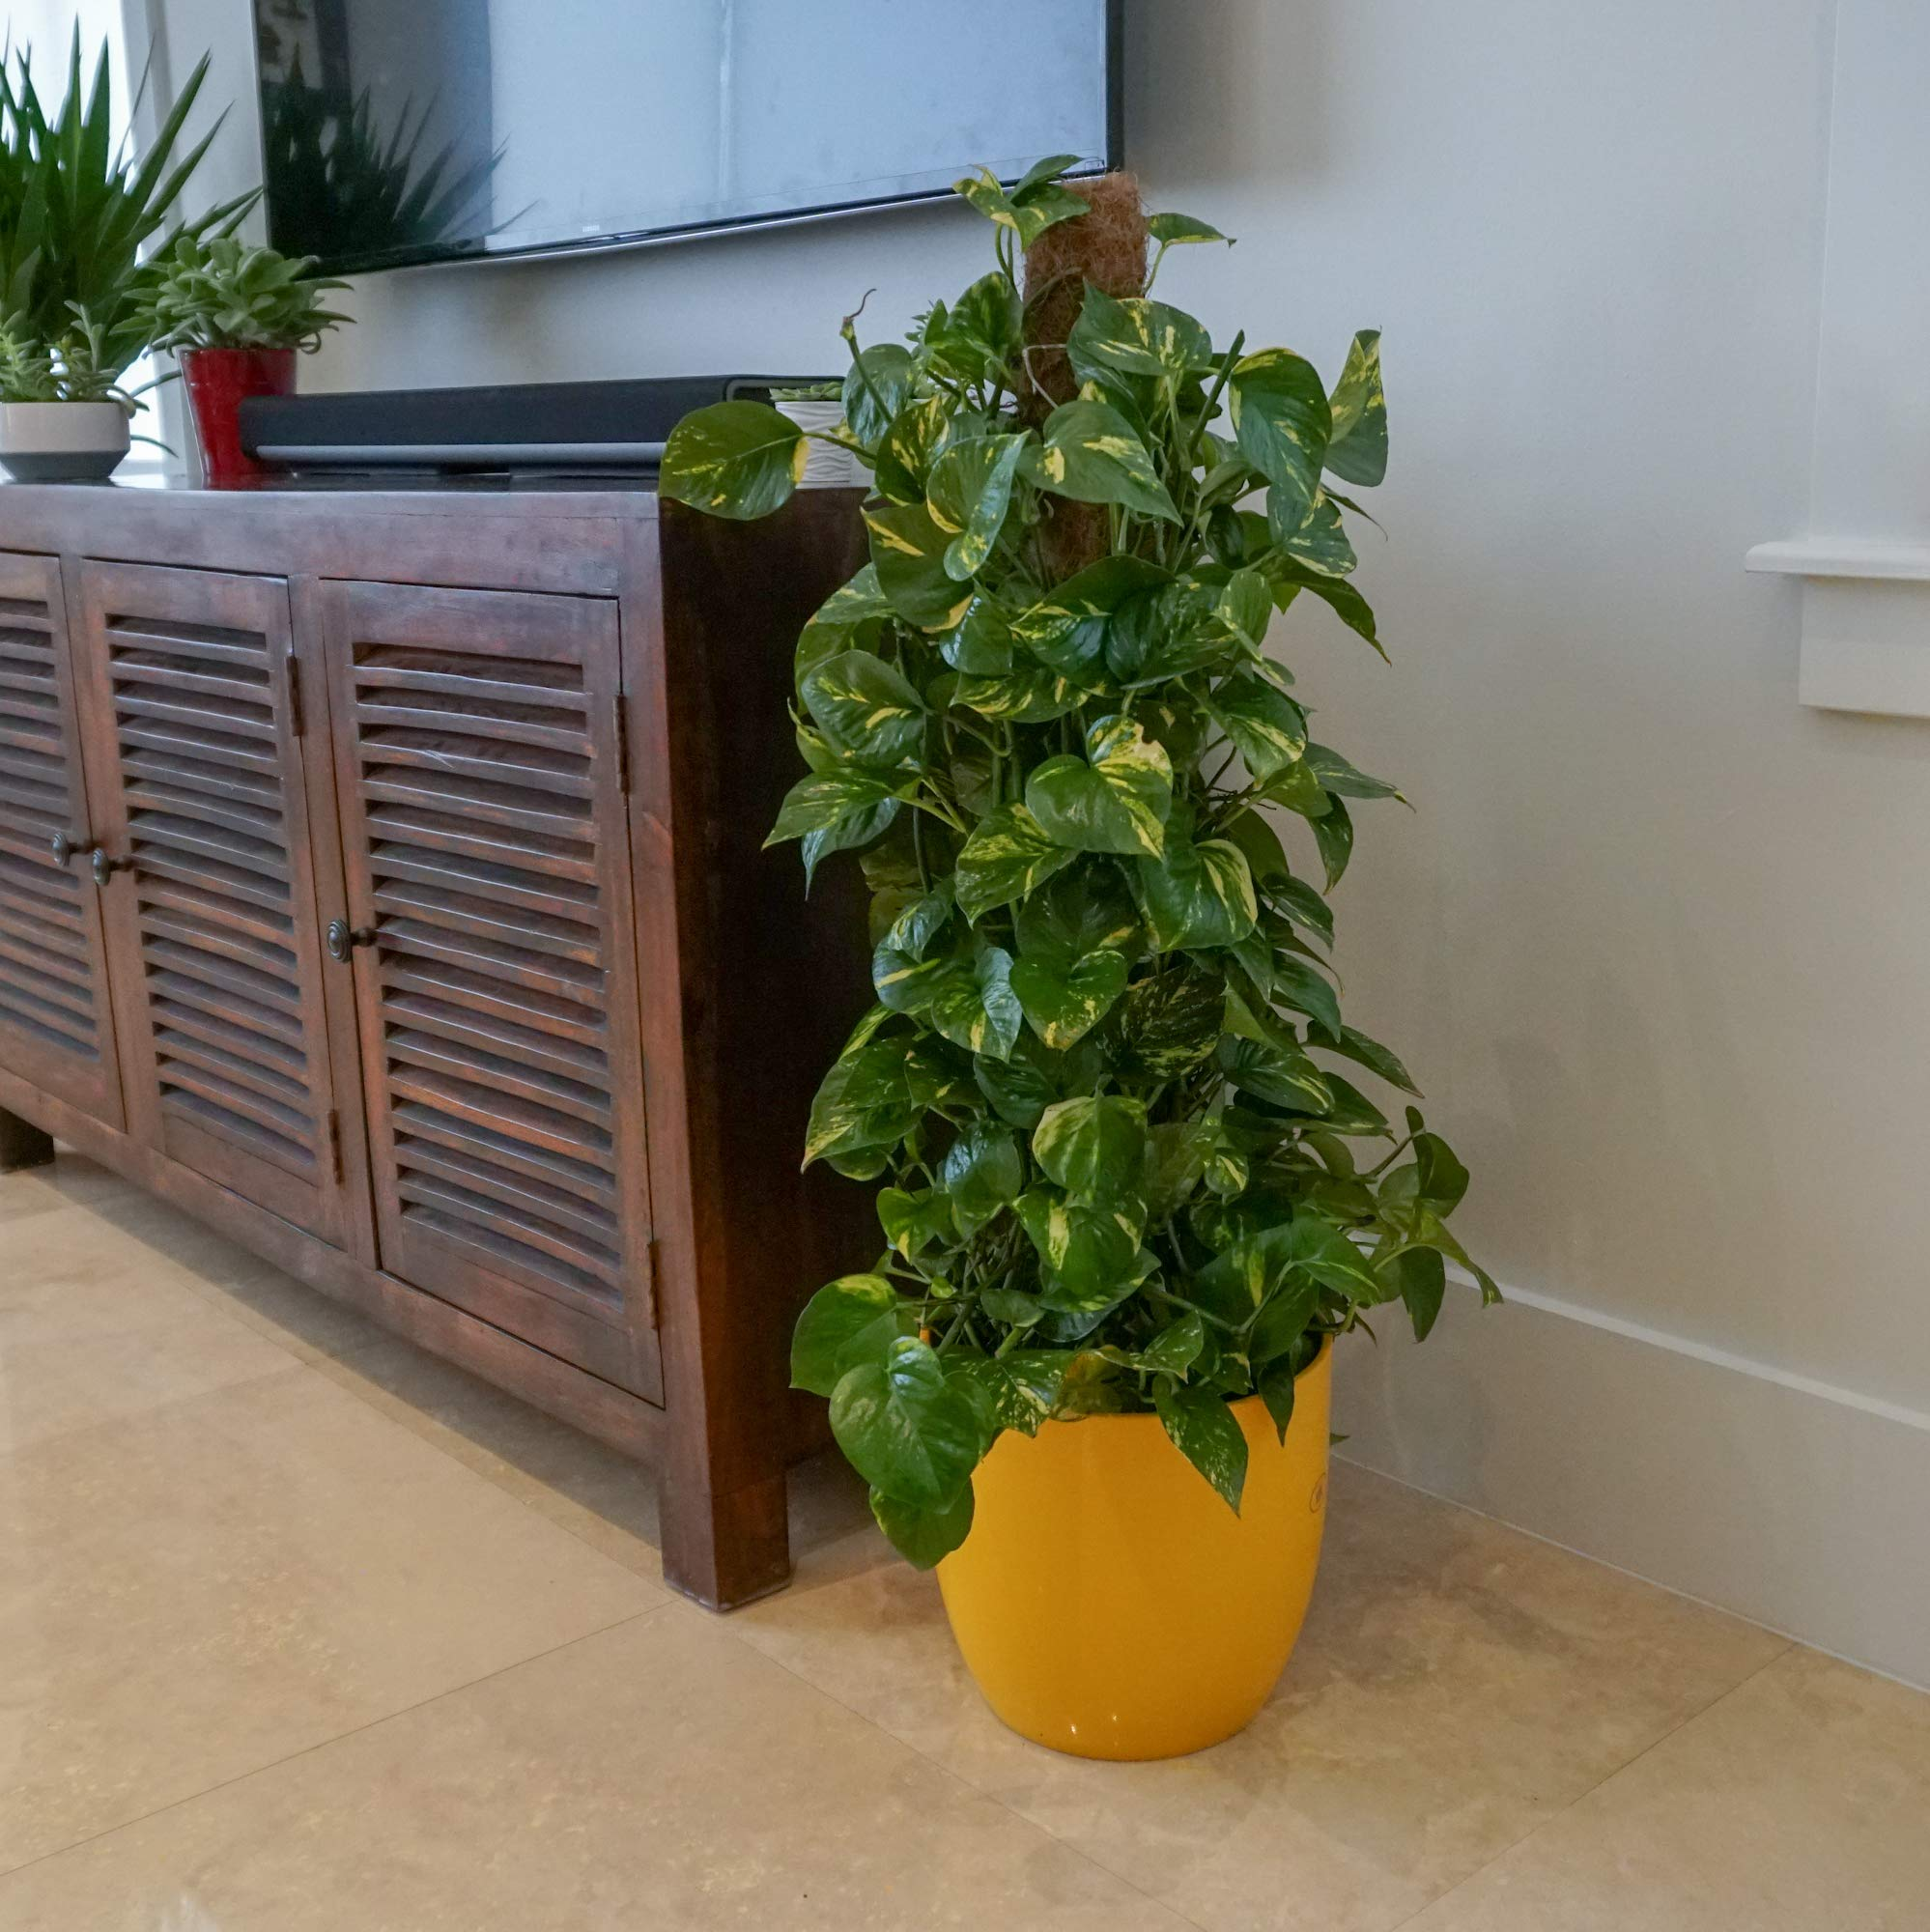 United Nursery Golden Pothos Totem Live Indoor Air Plant. 38'' Shipping Size. Shipped Fresh in Grower Pot from Our Florida Farm by United Nursery (Image #4)